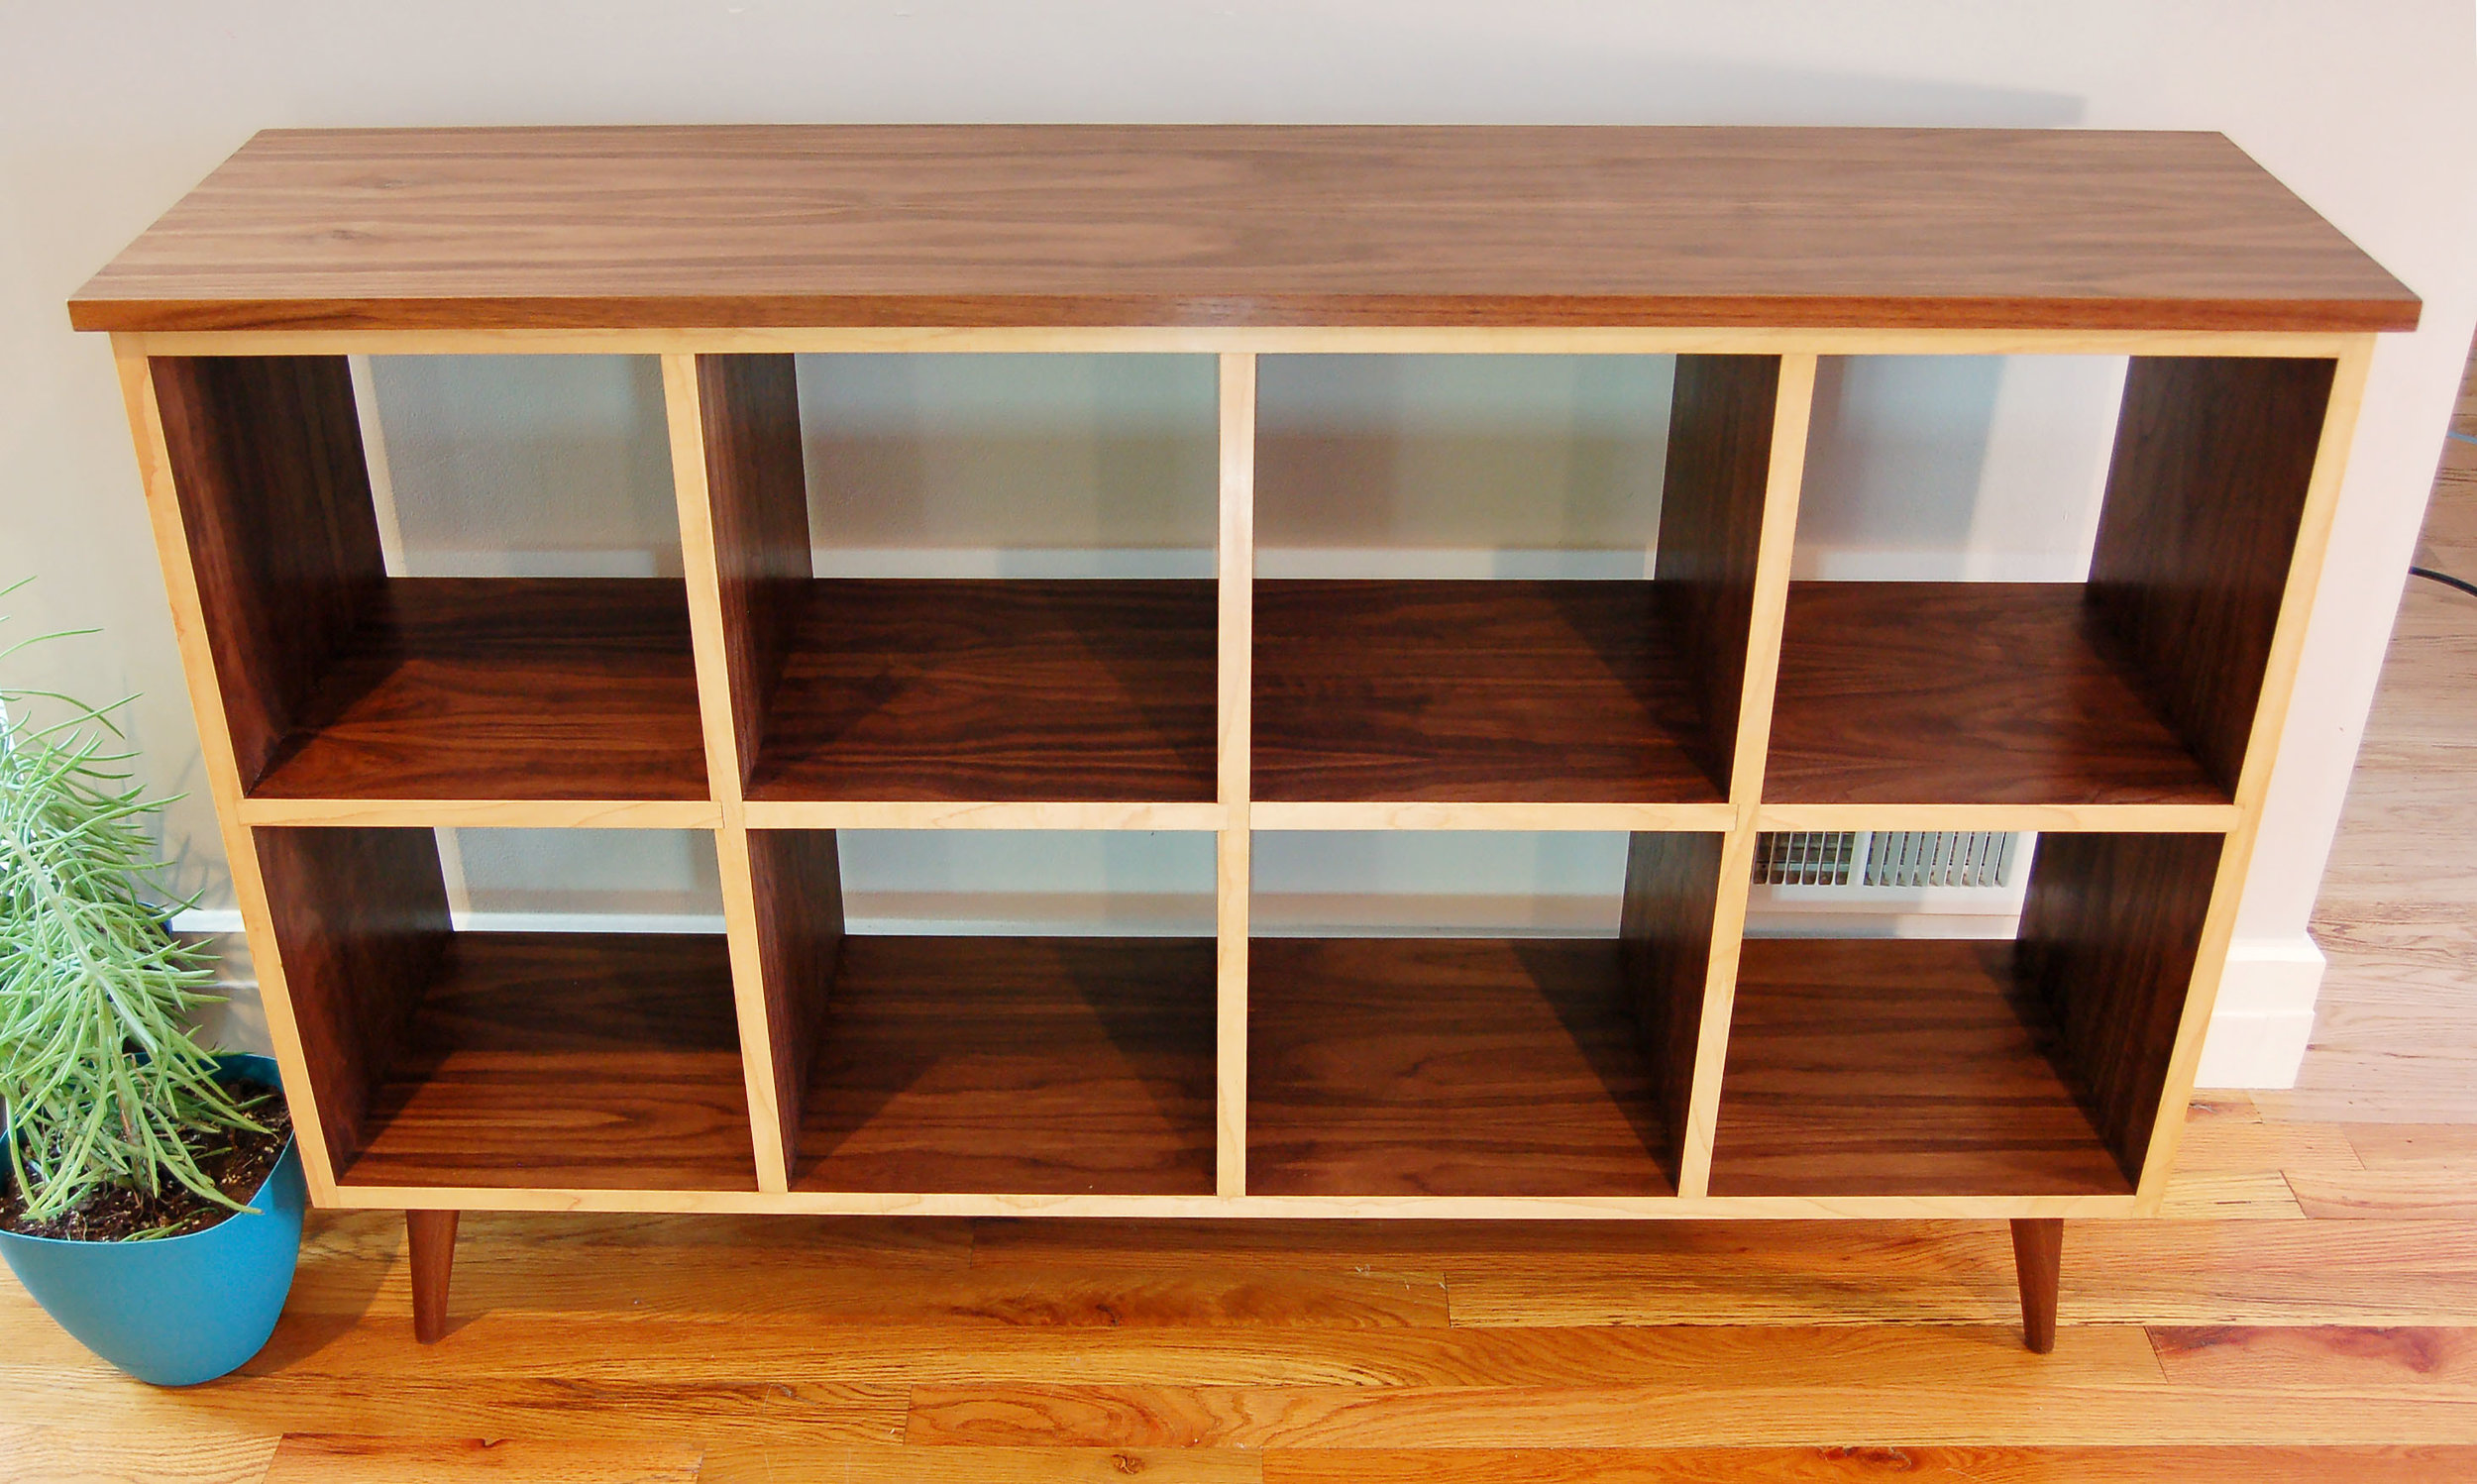 Honore-Cabinetry-custom-modern-walnut-cube-shelves.JPG